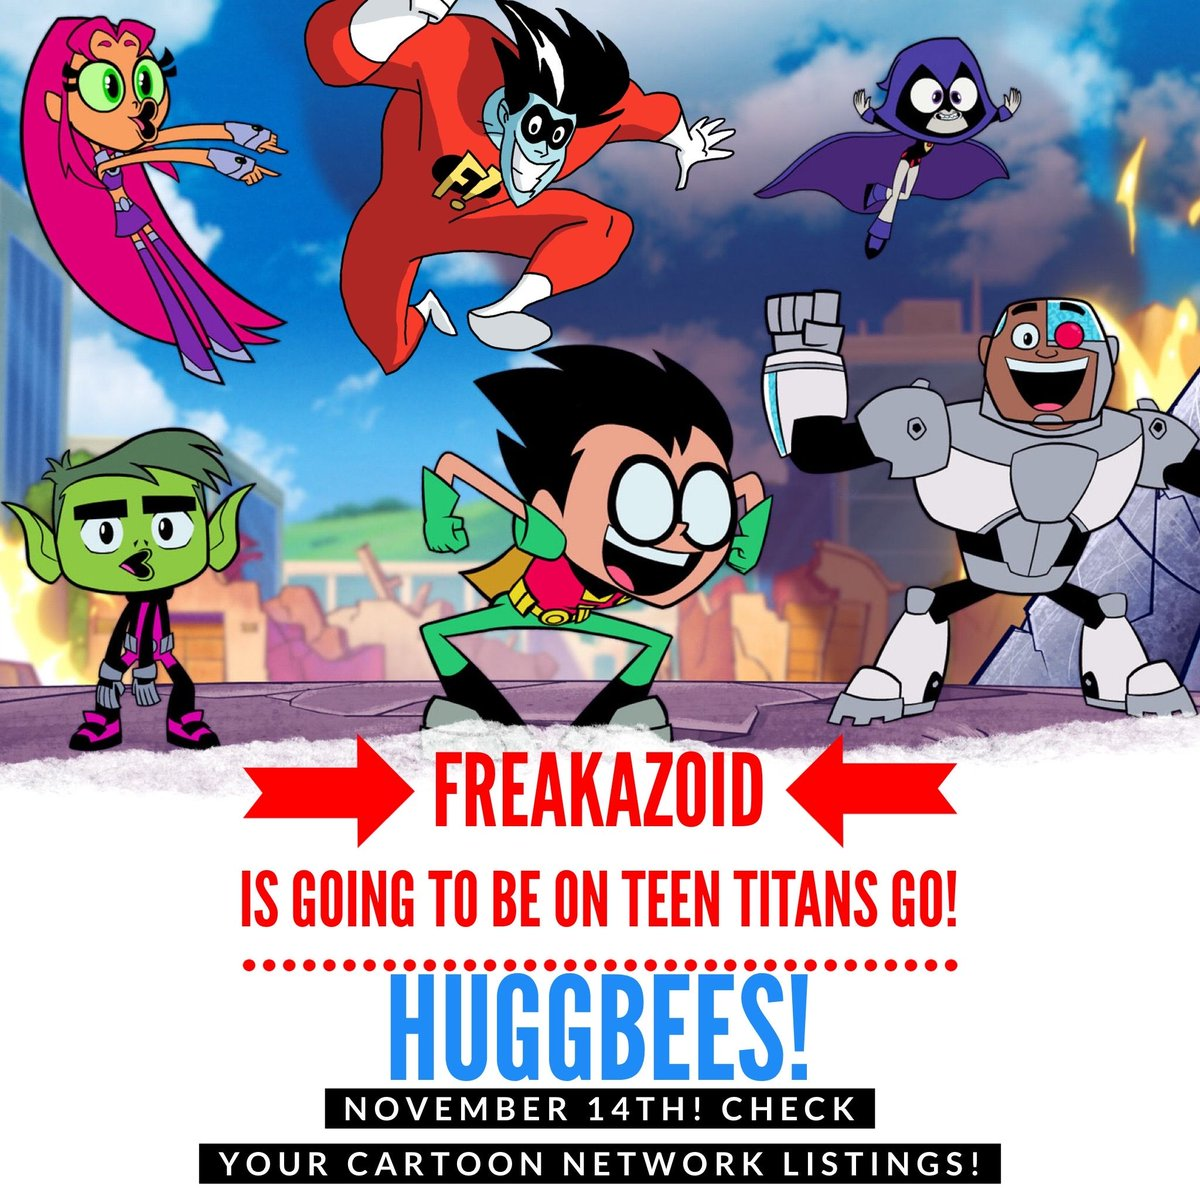 The Animanicast On Twitter Huggbees Saturday November 14th Look For A New Teentitansgo Featuring Freakazoid The Episode Huggbees Description The Brain Teams Up With The Lobe So The Titans Enlist The Help